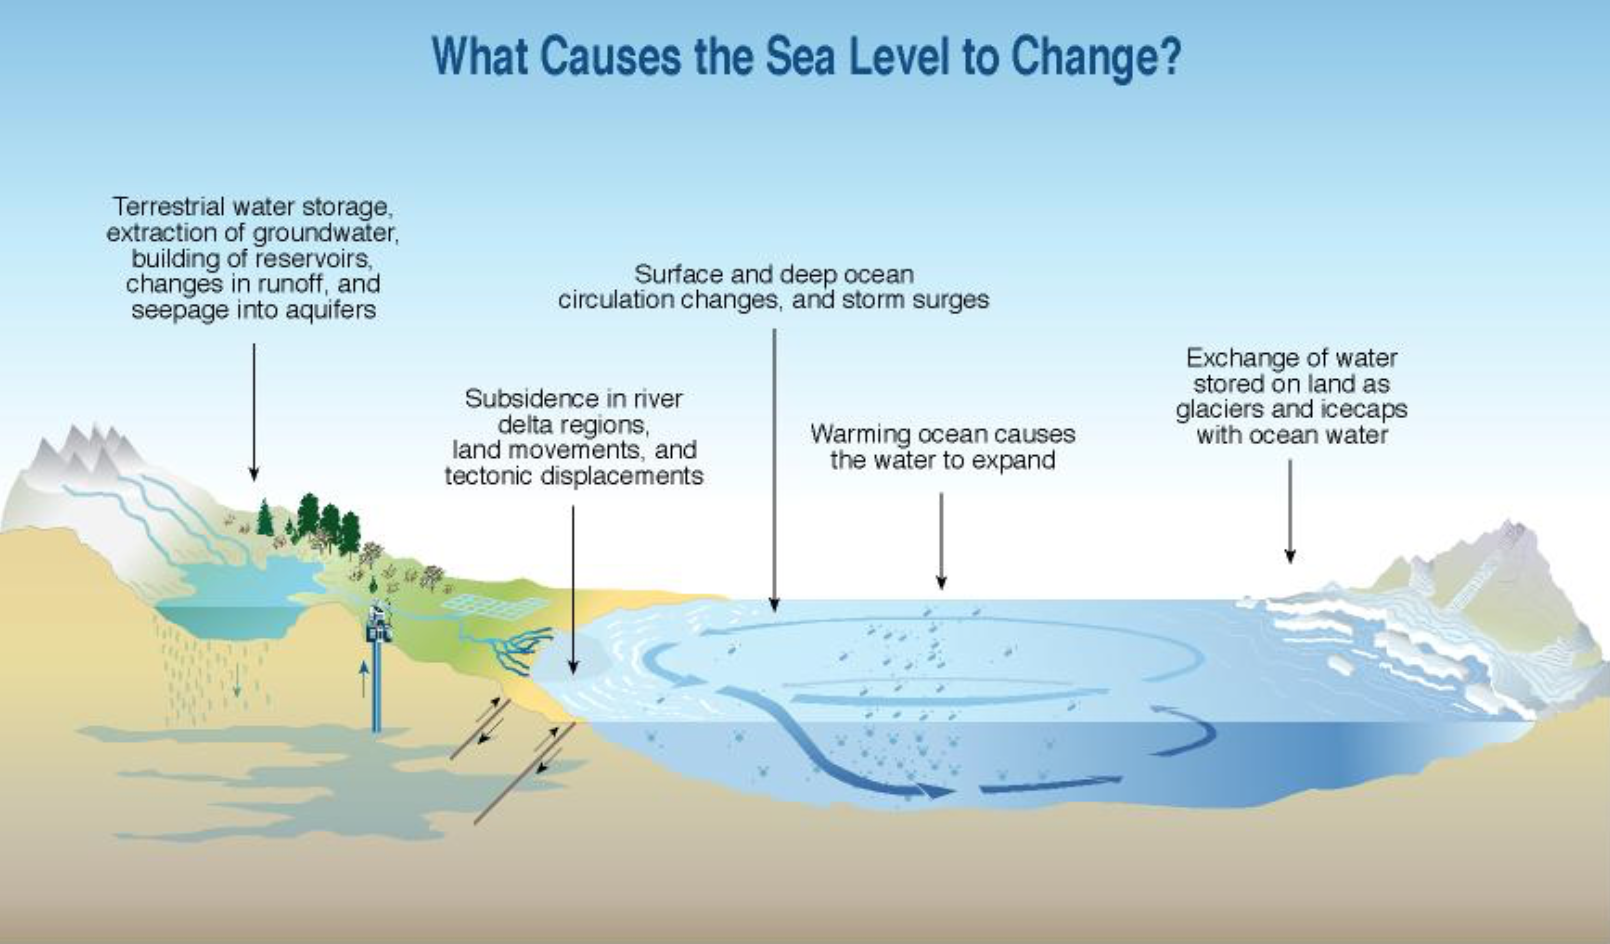 Photo credit: UNEP-David Griggs, in Climate Change 2001, Synthesis Report. Contribution of working groups I, II and III to the Third Assessment Report of the Intergovernmental Panel on Climate Change